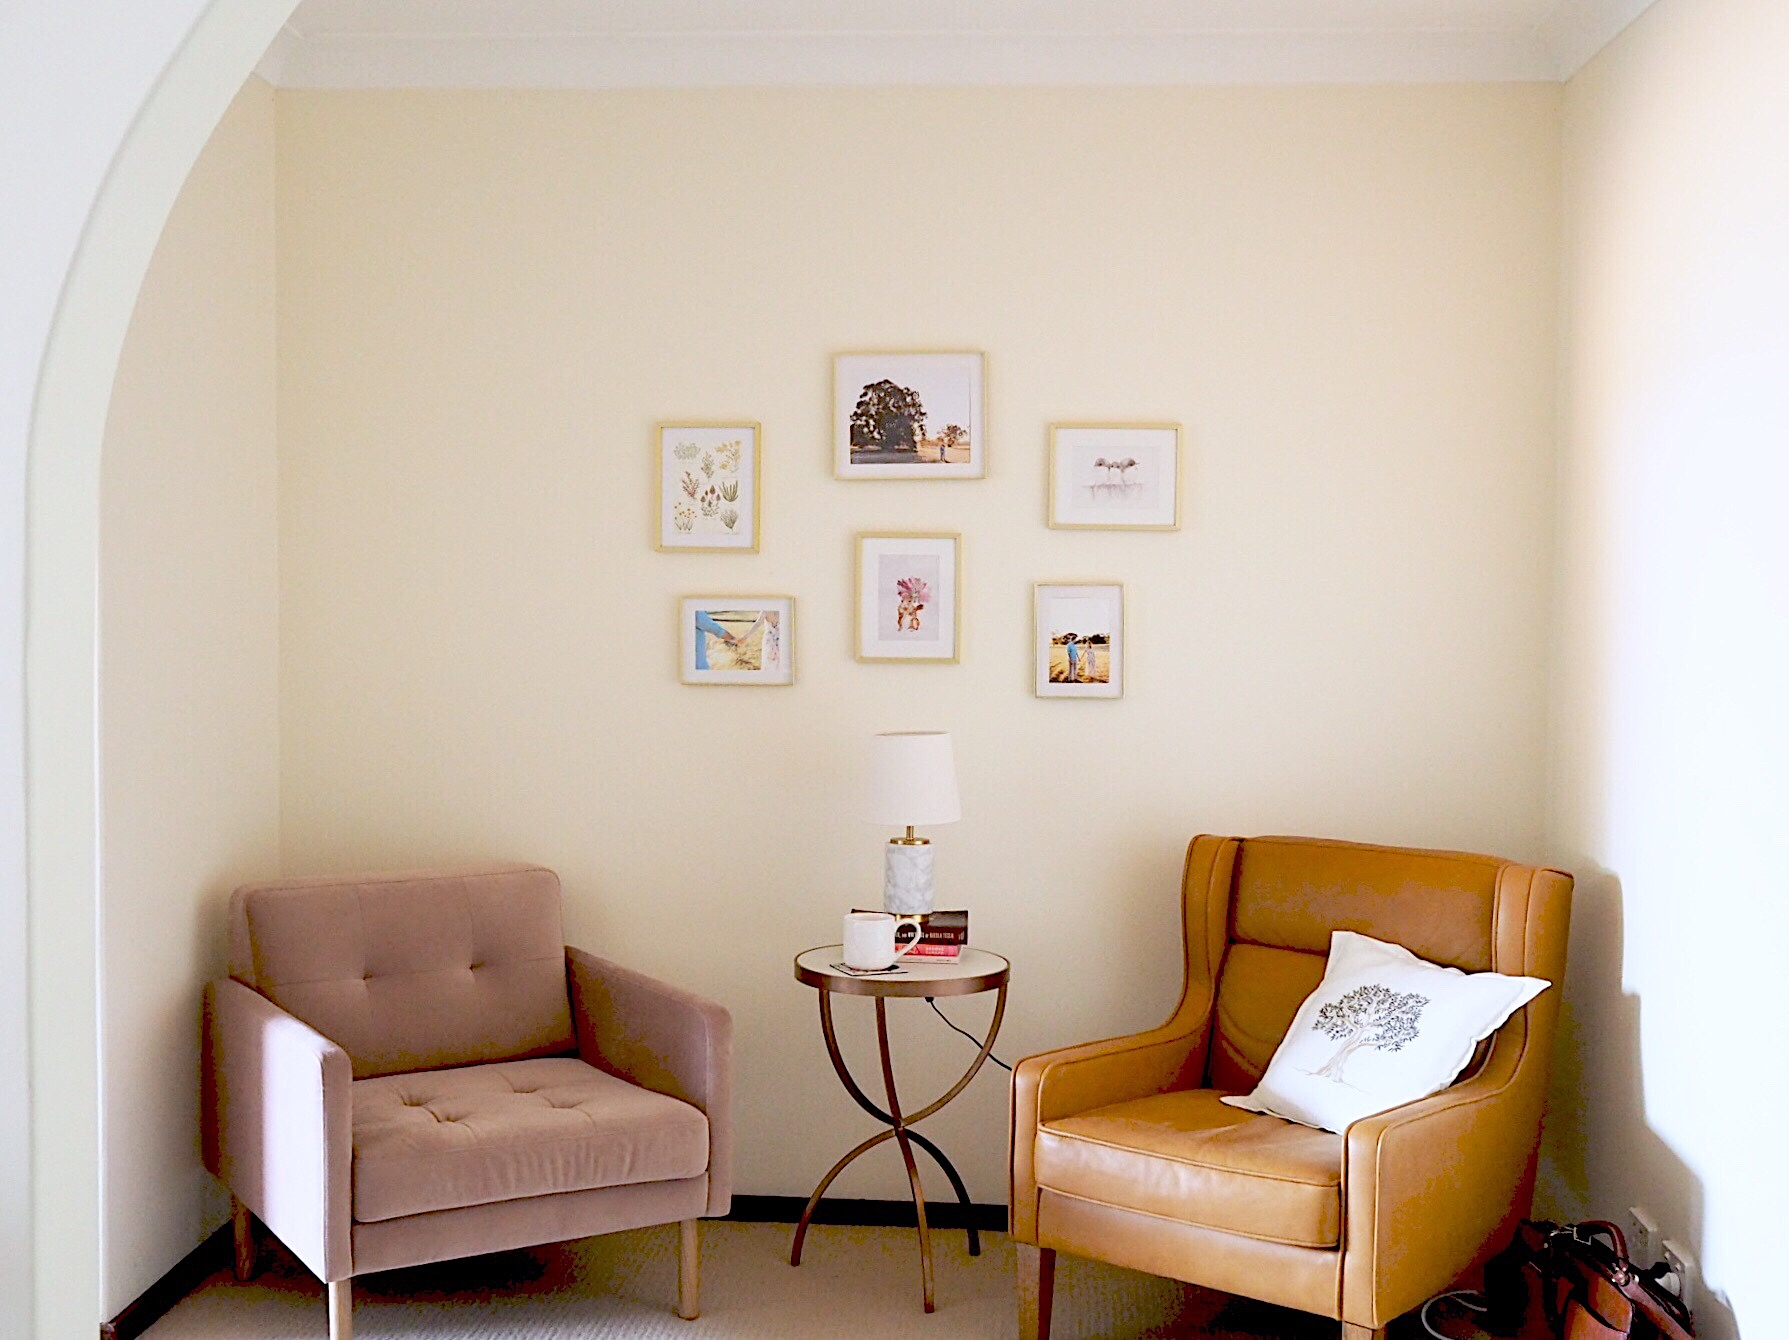 How To Build A Gallery Wall625F3959-CC40-4FF4-B962-51BE5BC36939.JPG